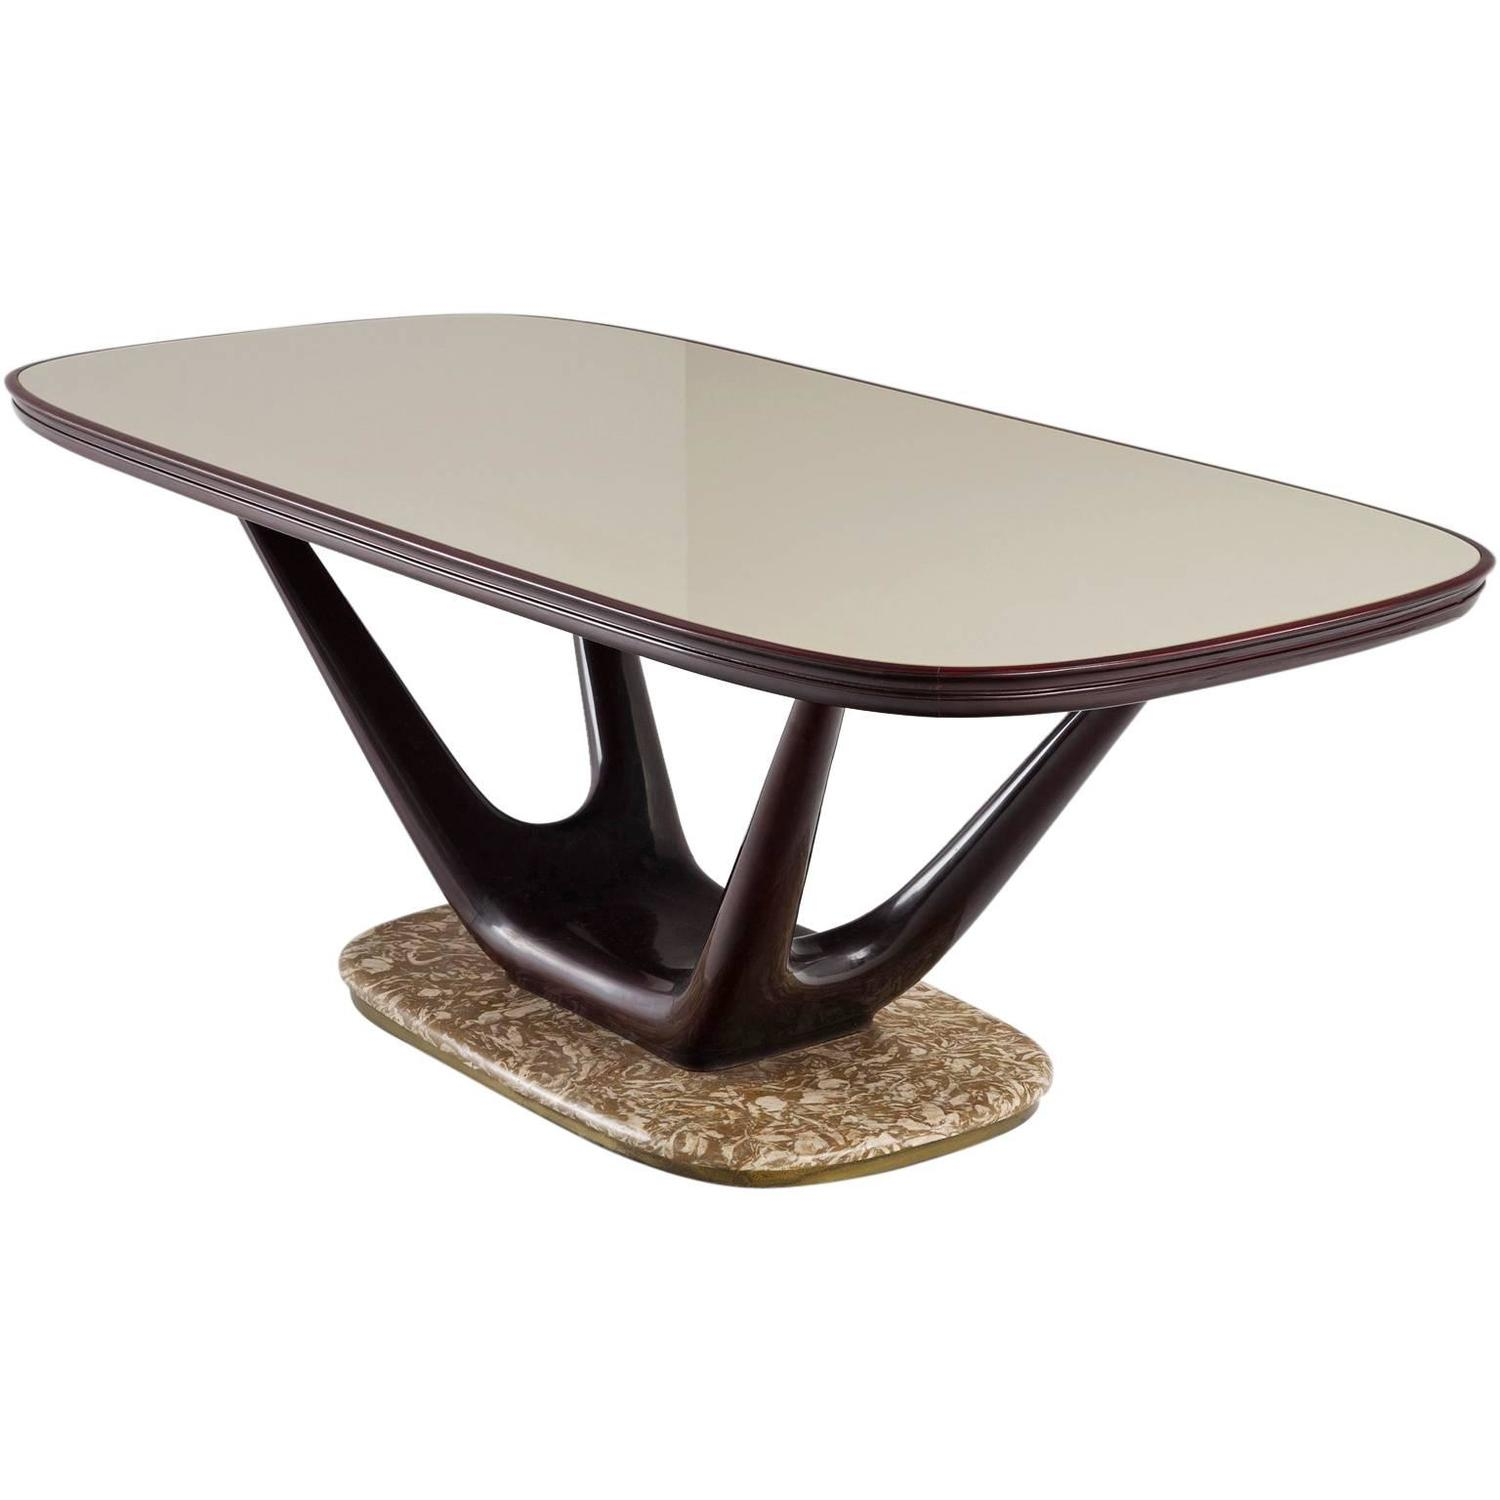 Italian Dining Table In Marble Glass And Mahogany For Sale At 1stdibs